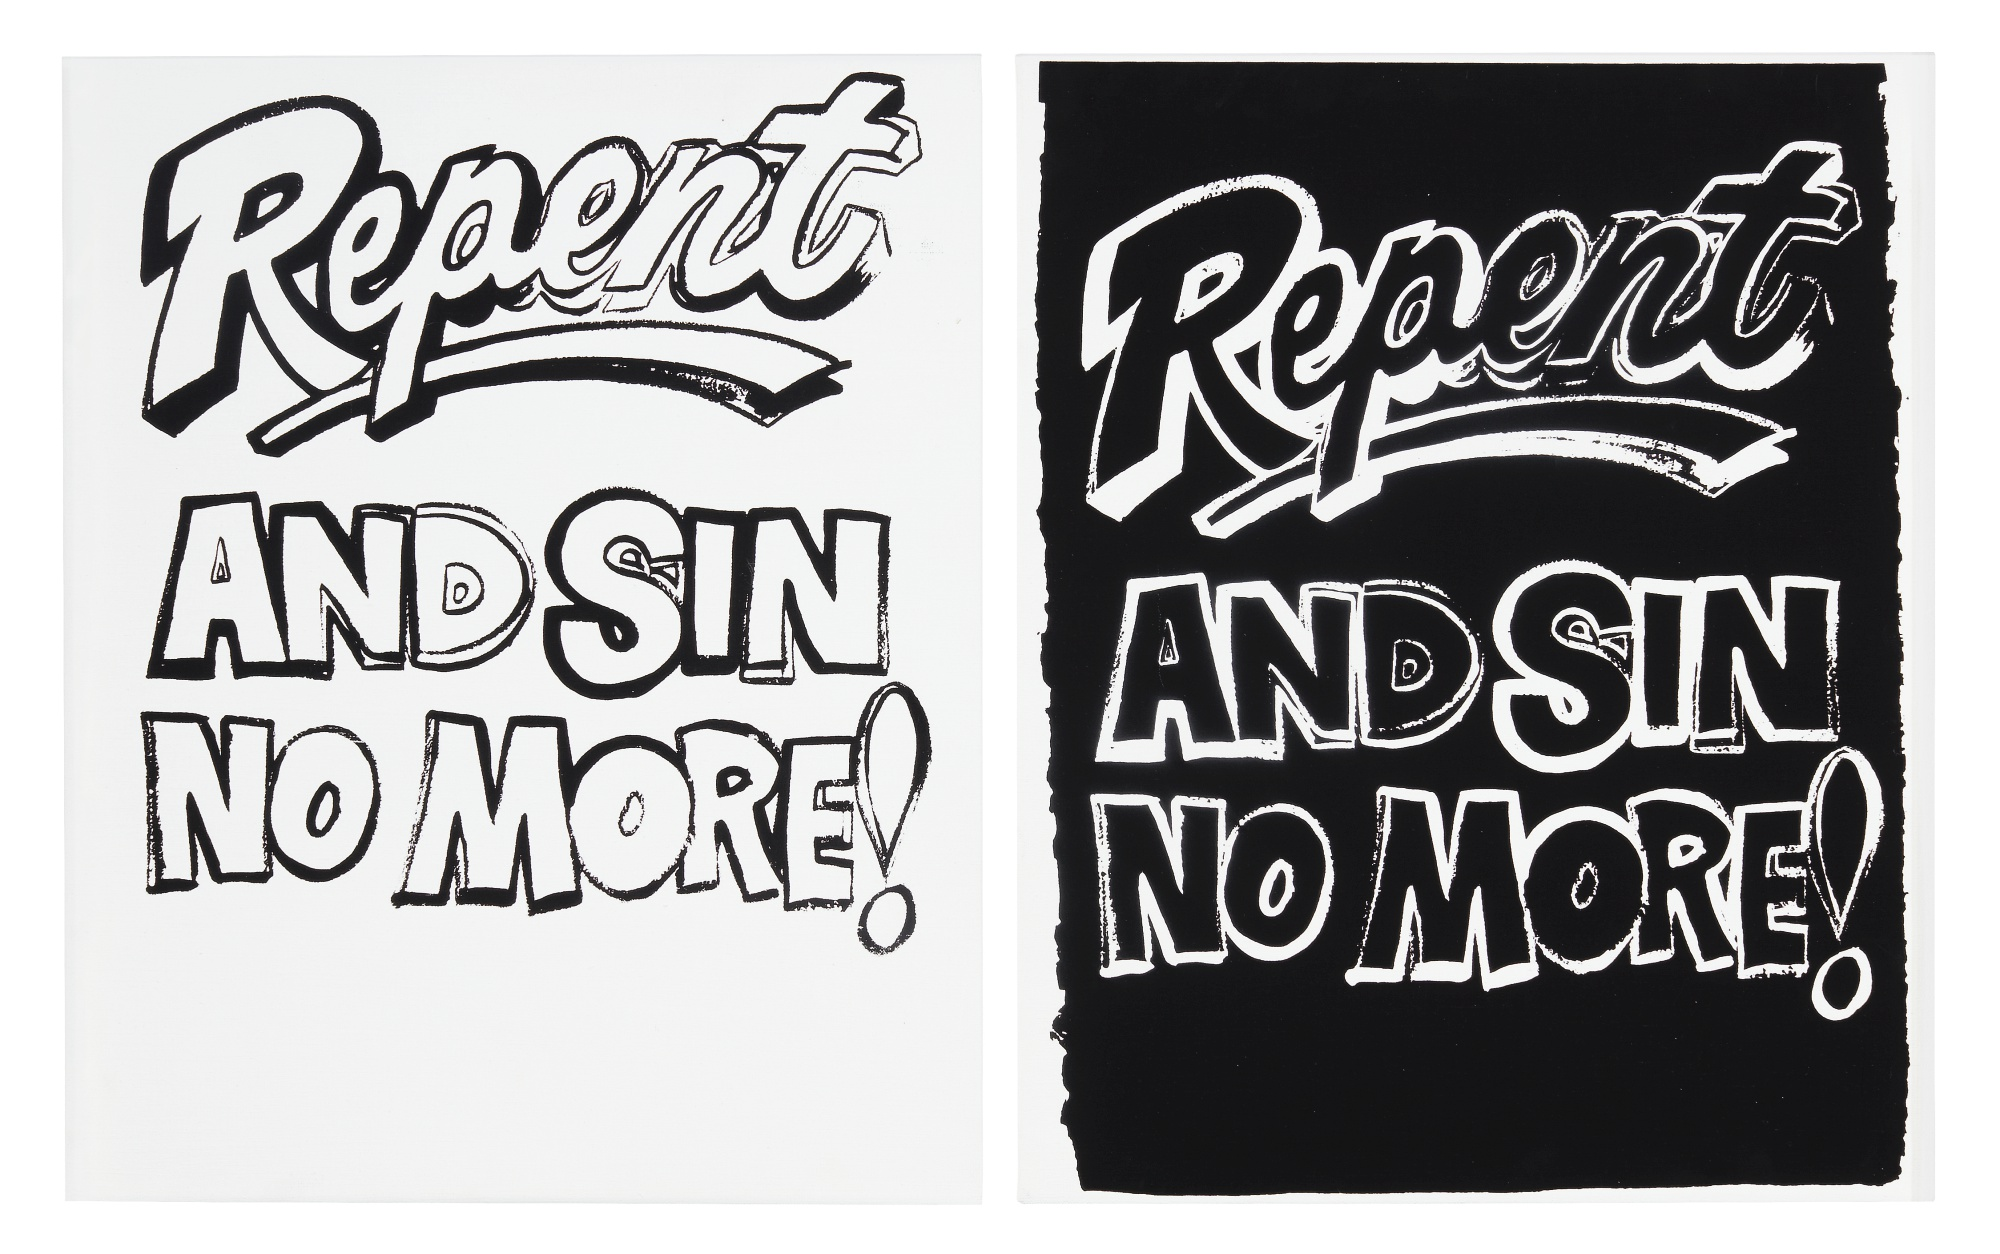 Andy Warhol - I. Repent and Sin No More (Positive) and II. Repent and Sin No More (Negative)Acrylic and silkscreen ink on canvasEach: 20 by 16 in. 50.8 by 40.6 cm.Executed in 1985-1986.On View: May 2 - August 23, 2019